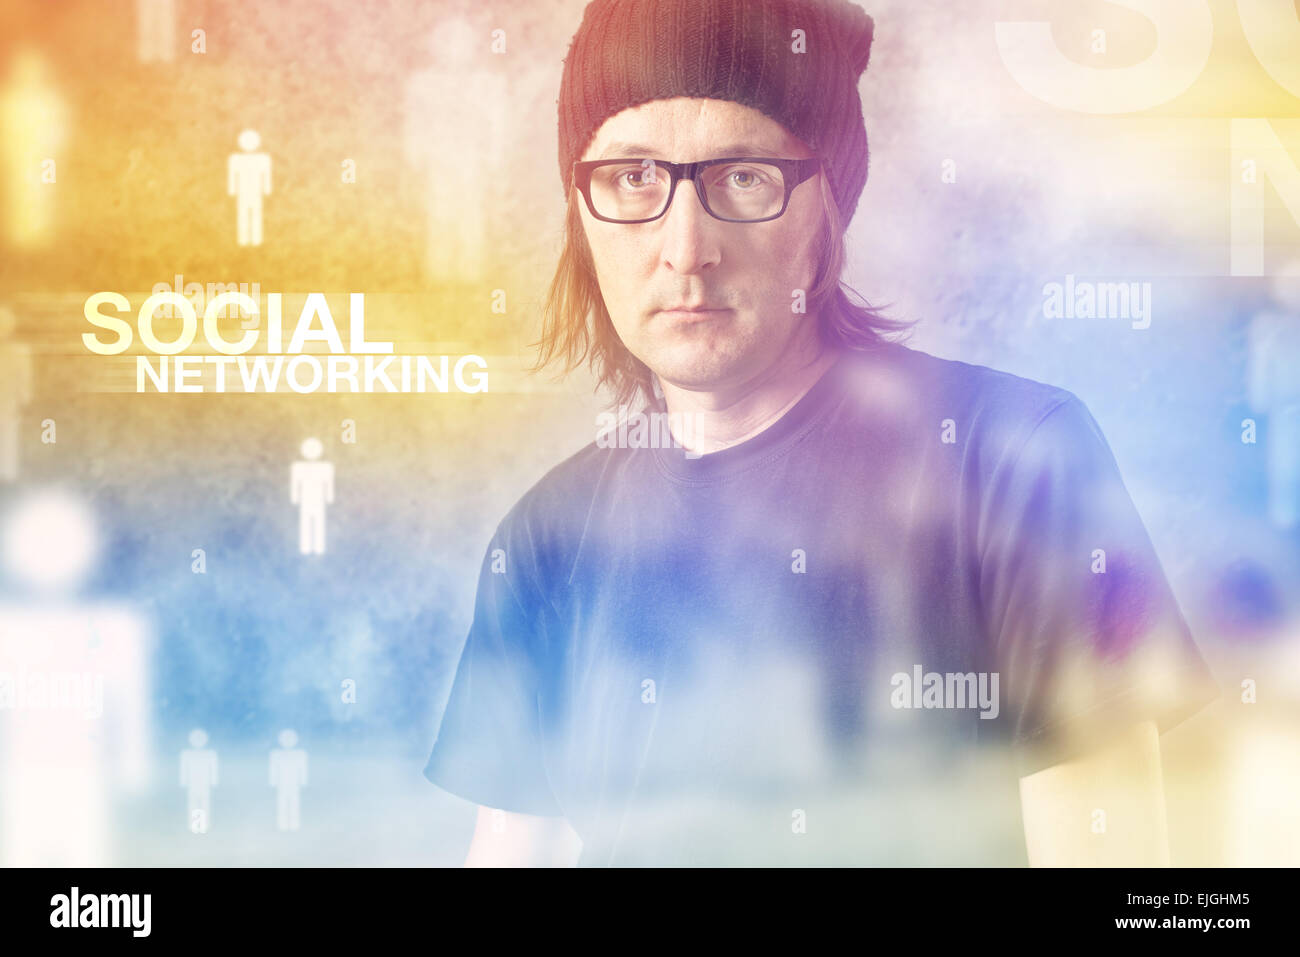 Social Networking Concept with Casual Man and blurred people in the background - Stock Image